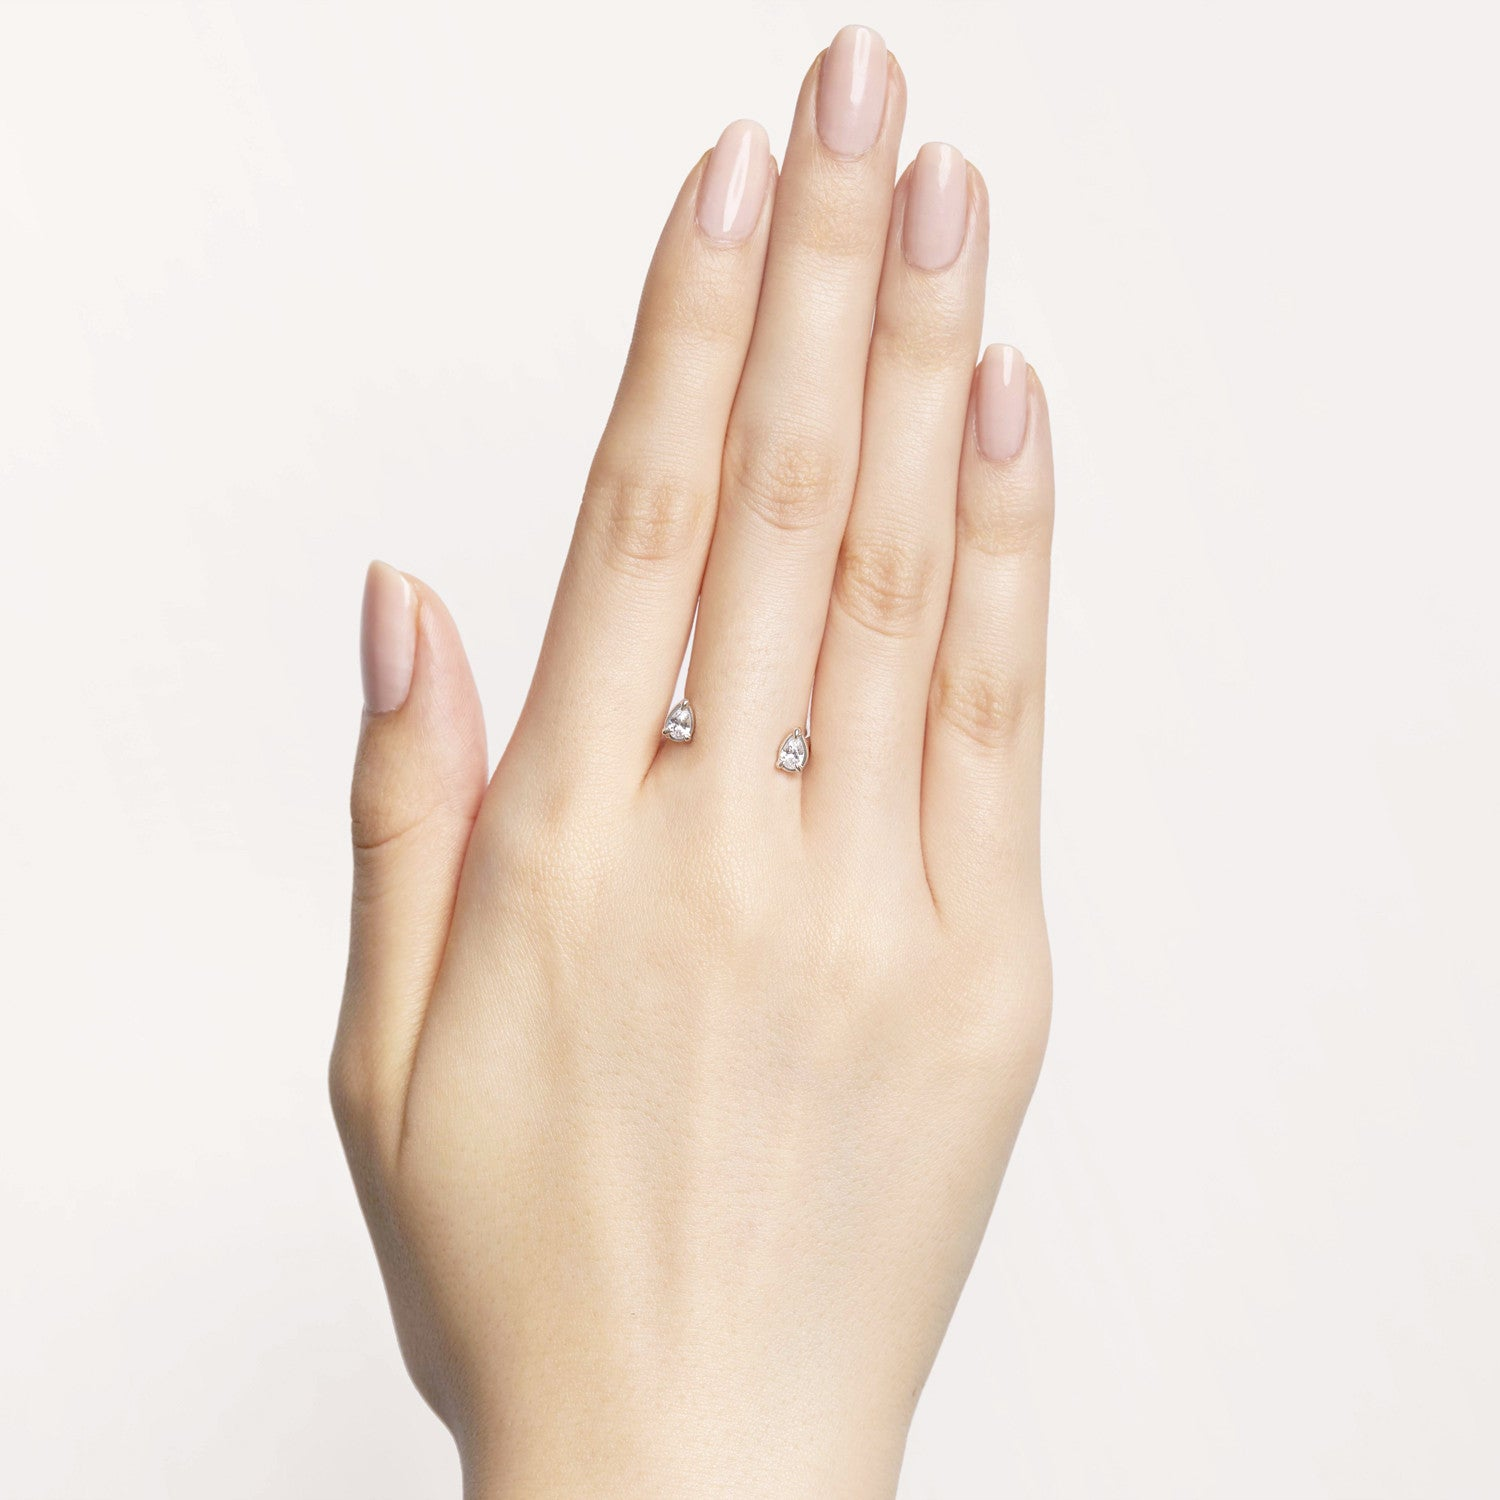 Pear-shaped white diamonds floating cuffs on your skin